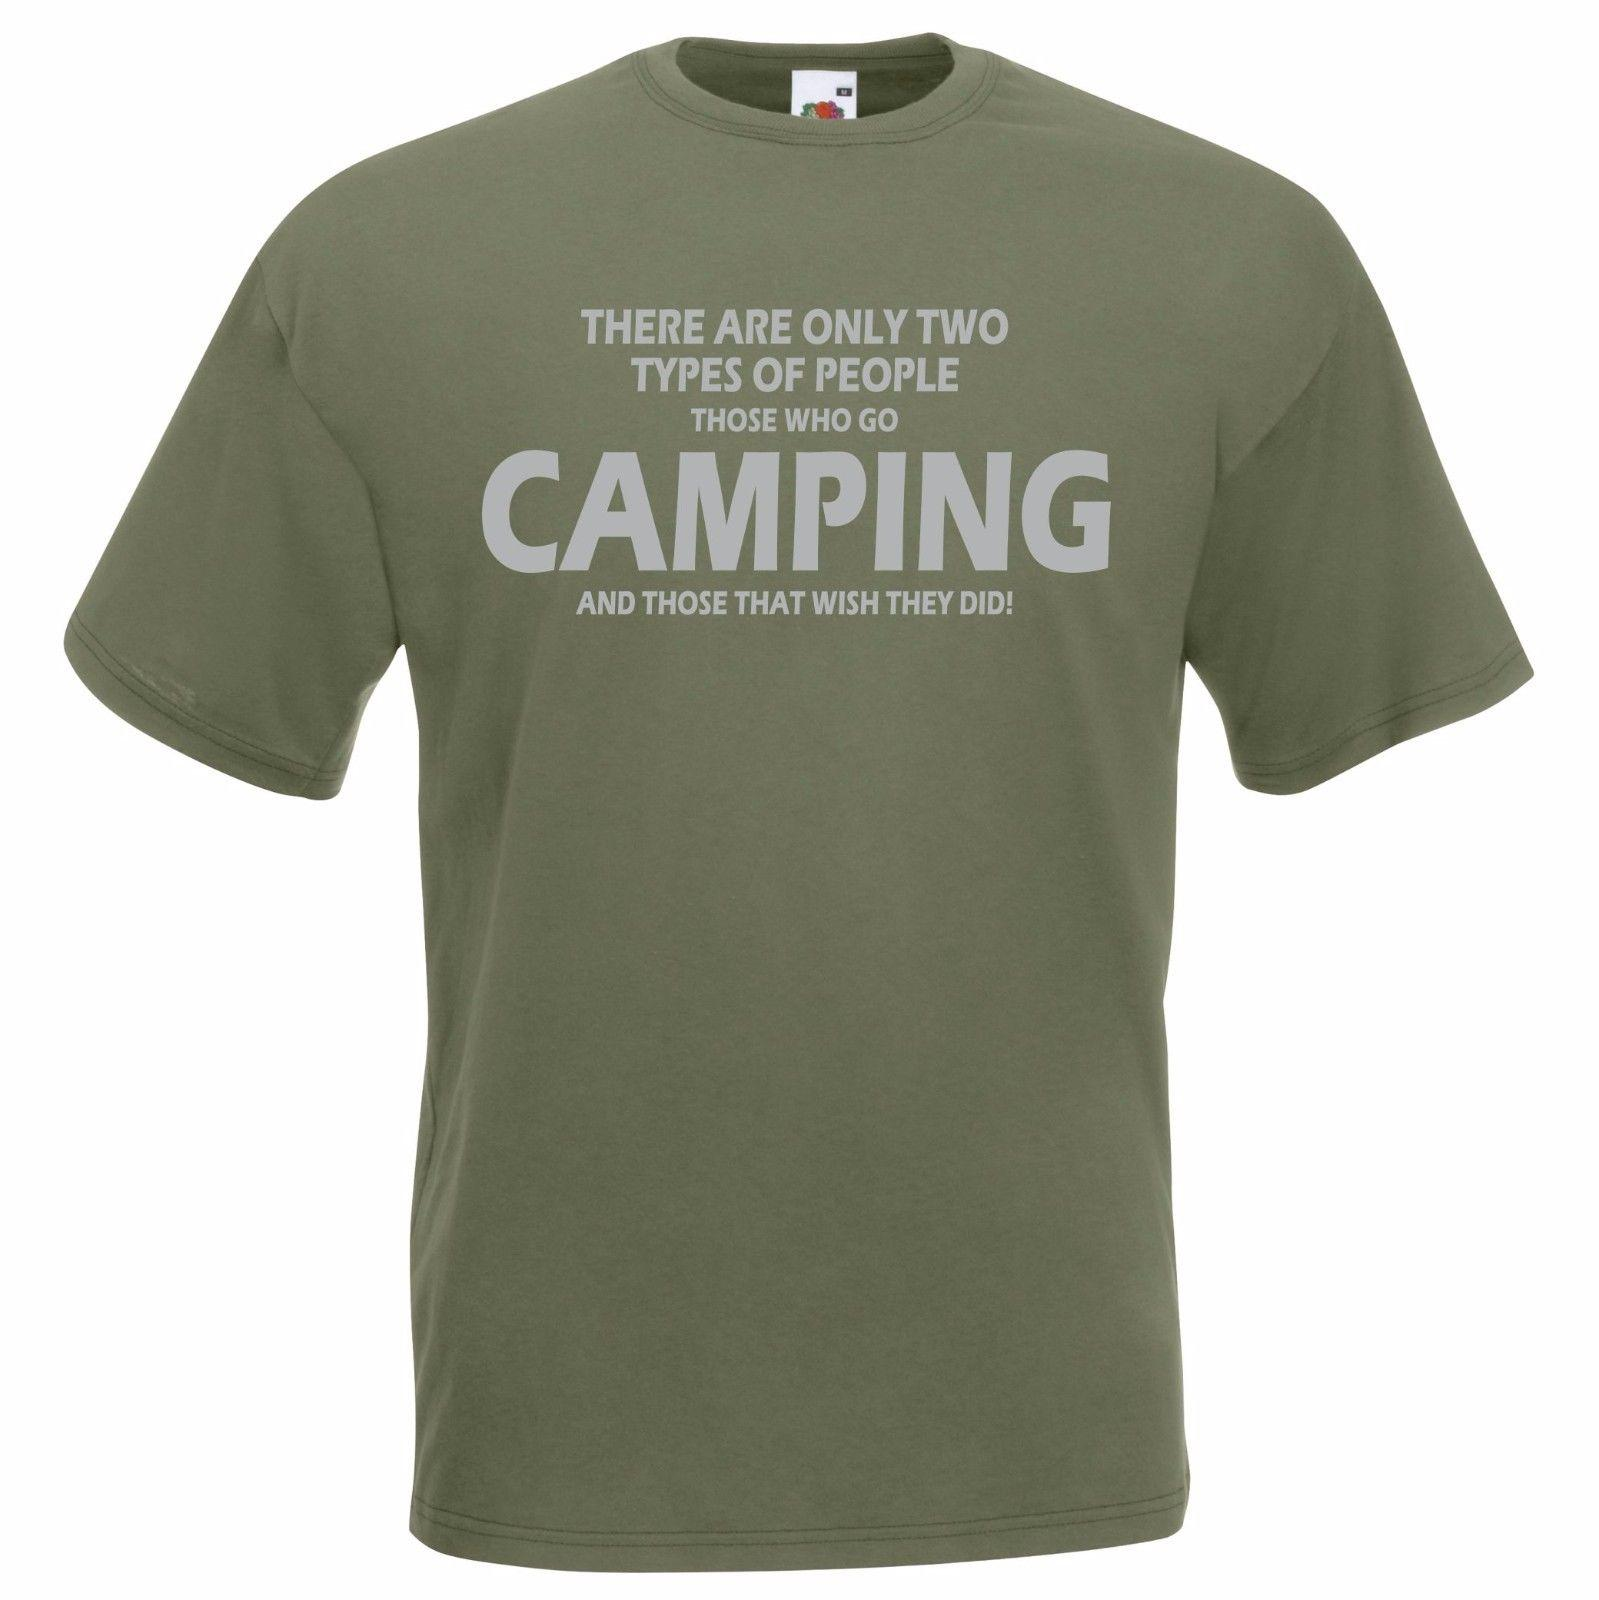 eec54604c Camping T Shirt Funny Tent TShirt Motorhome T Shirt Slogan Sizes S XXL TP  Online Shopping For T Shirt Silly Tee Shirts From Shirtsthatrock, $11.01|  DHgate.